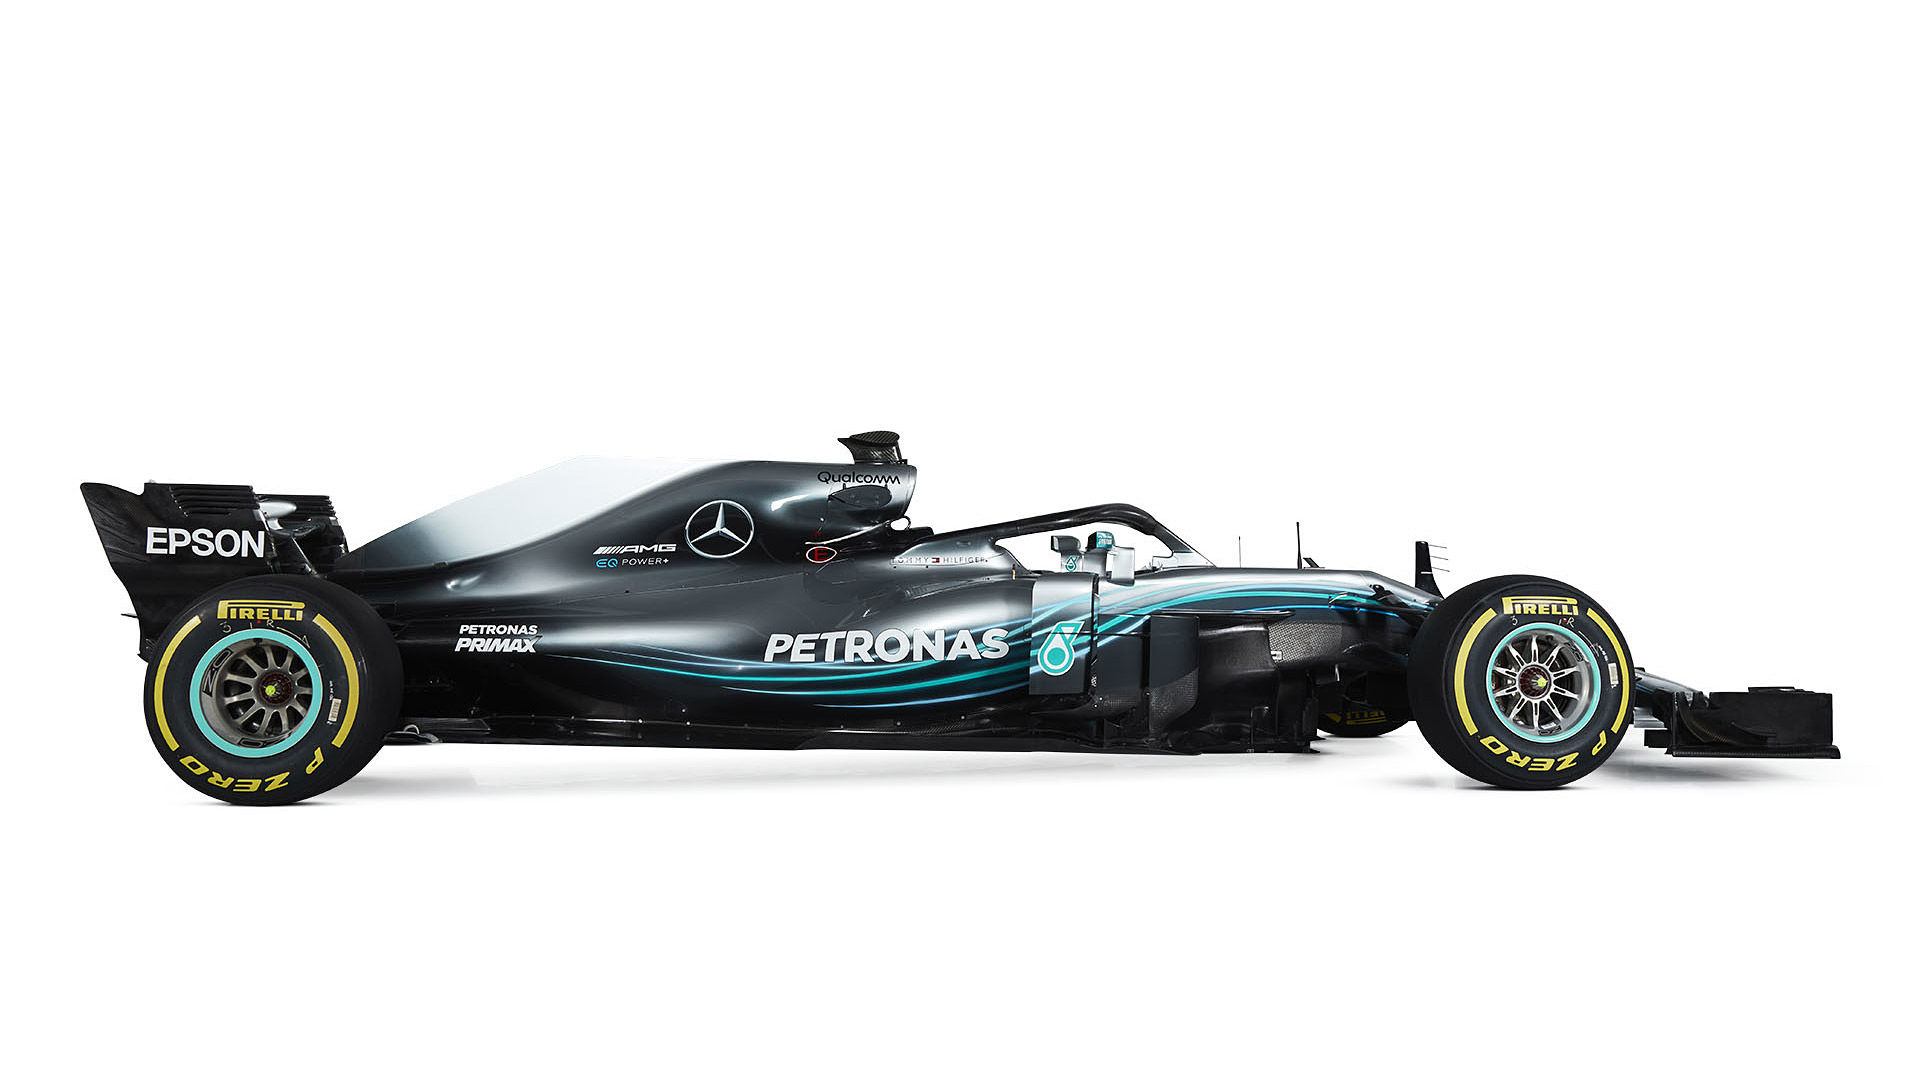 2018 Mercedes AMG W09 EQ Power+